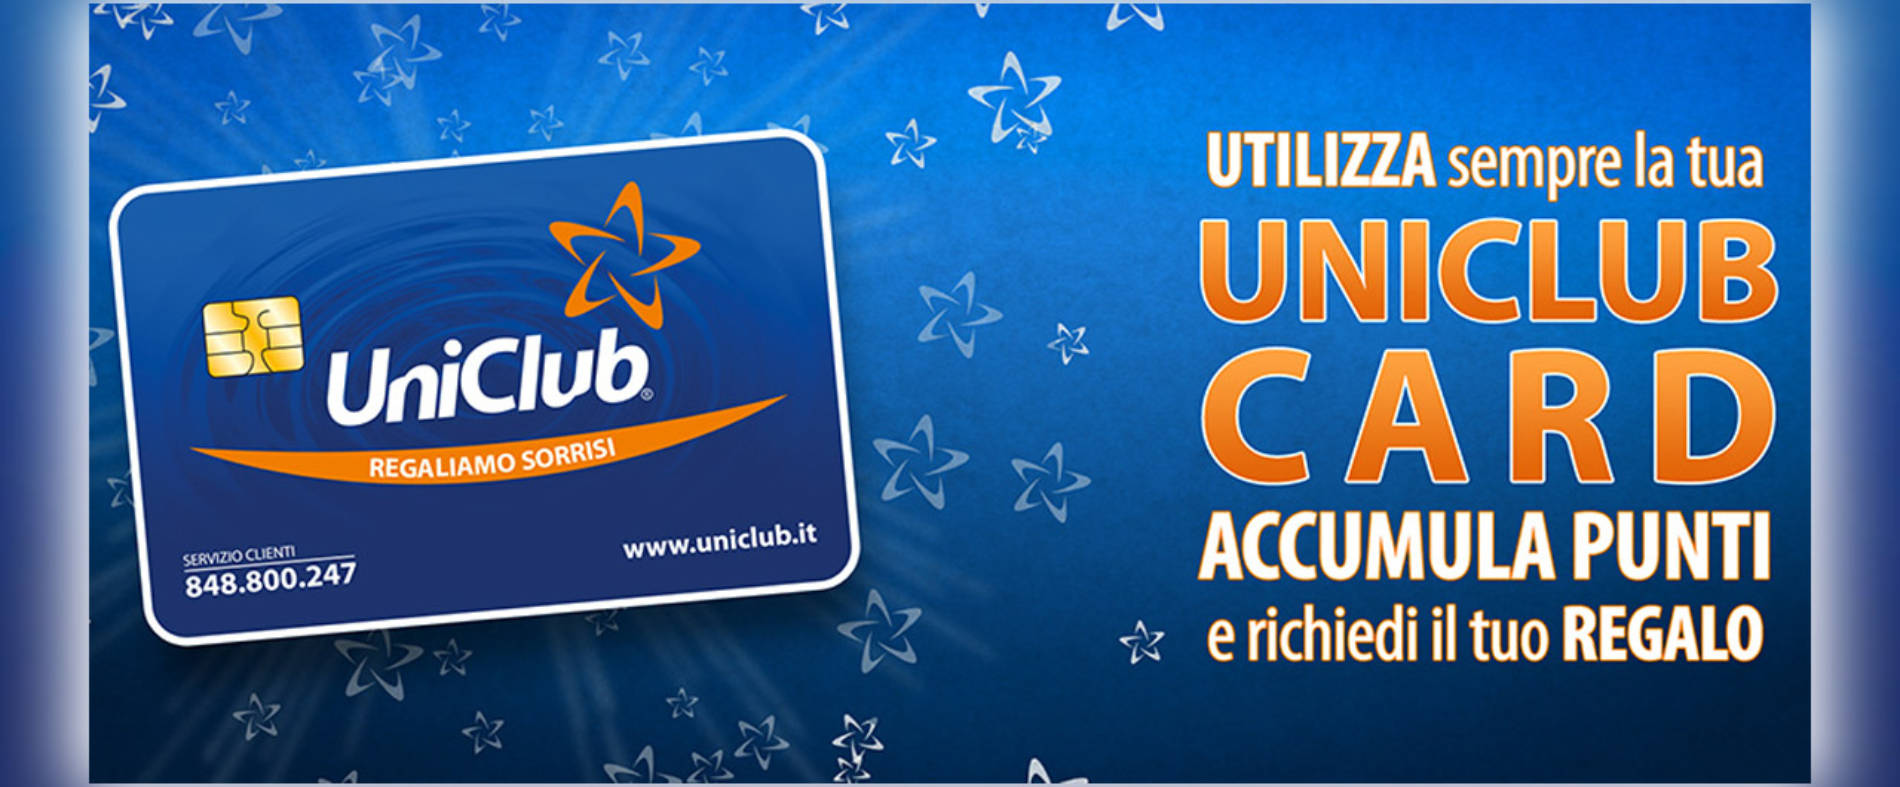 uniclub-card-ott-2020-light